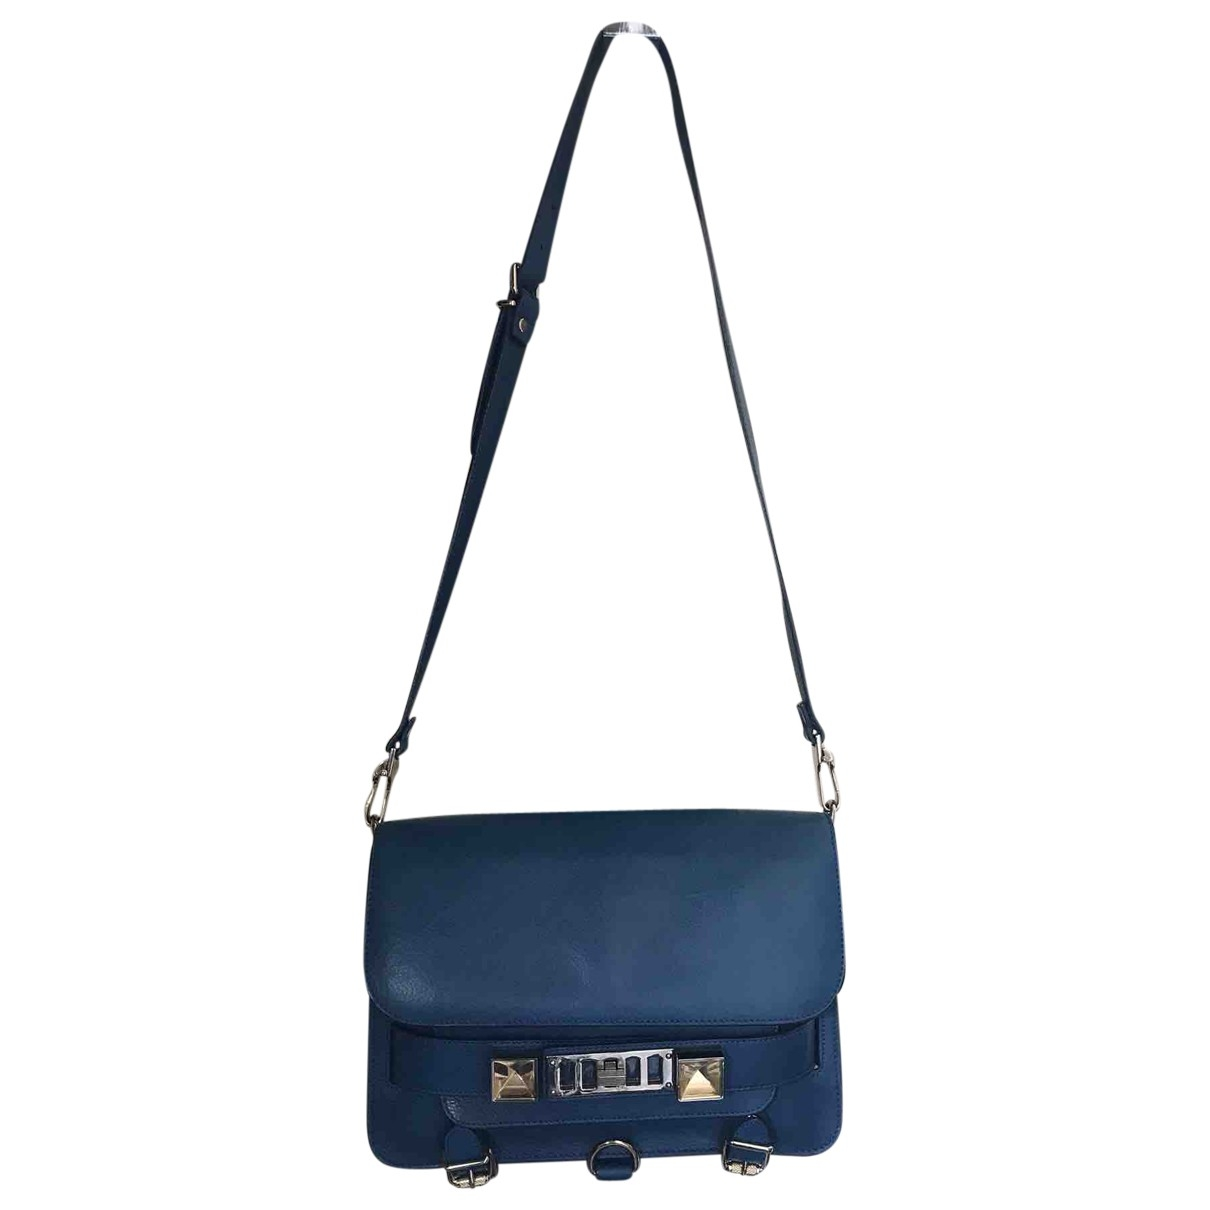 Proenza Schouler PS11 Blue Leather handbag for Women \N